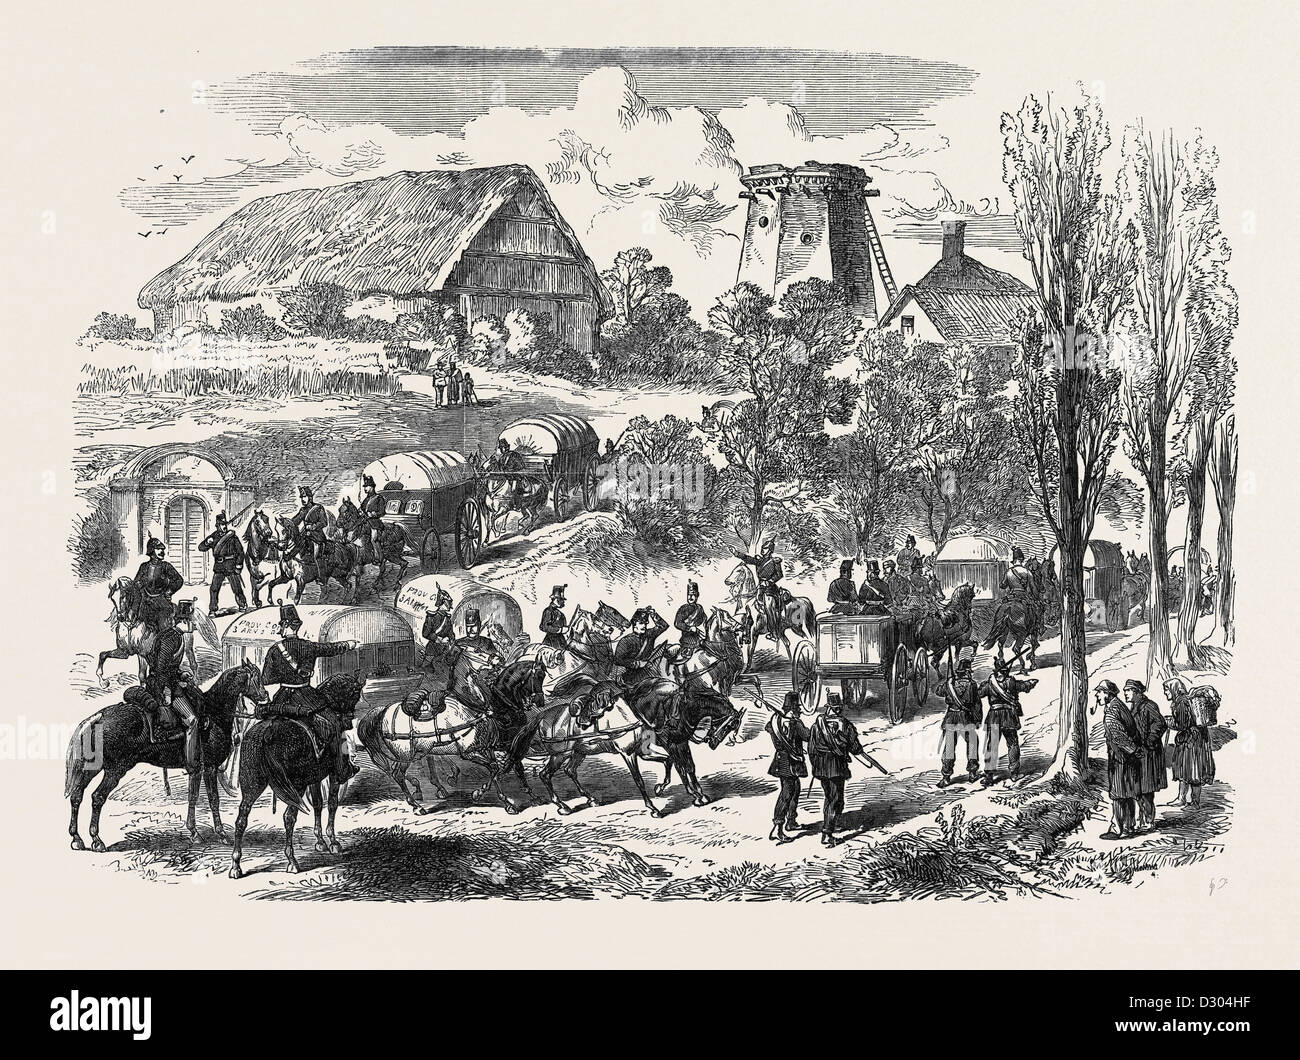 THE AUSTRO-PRUSSIAN WAR: PROVENDER WAGGONS OF THE PRUSSIAN ARMY PASSING THE SAXON FRONTIER 1866 - Stock Image